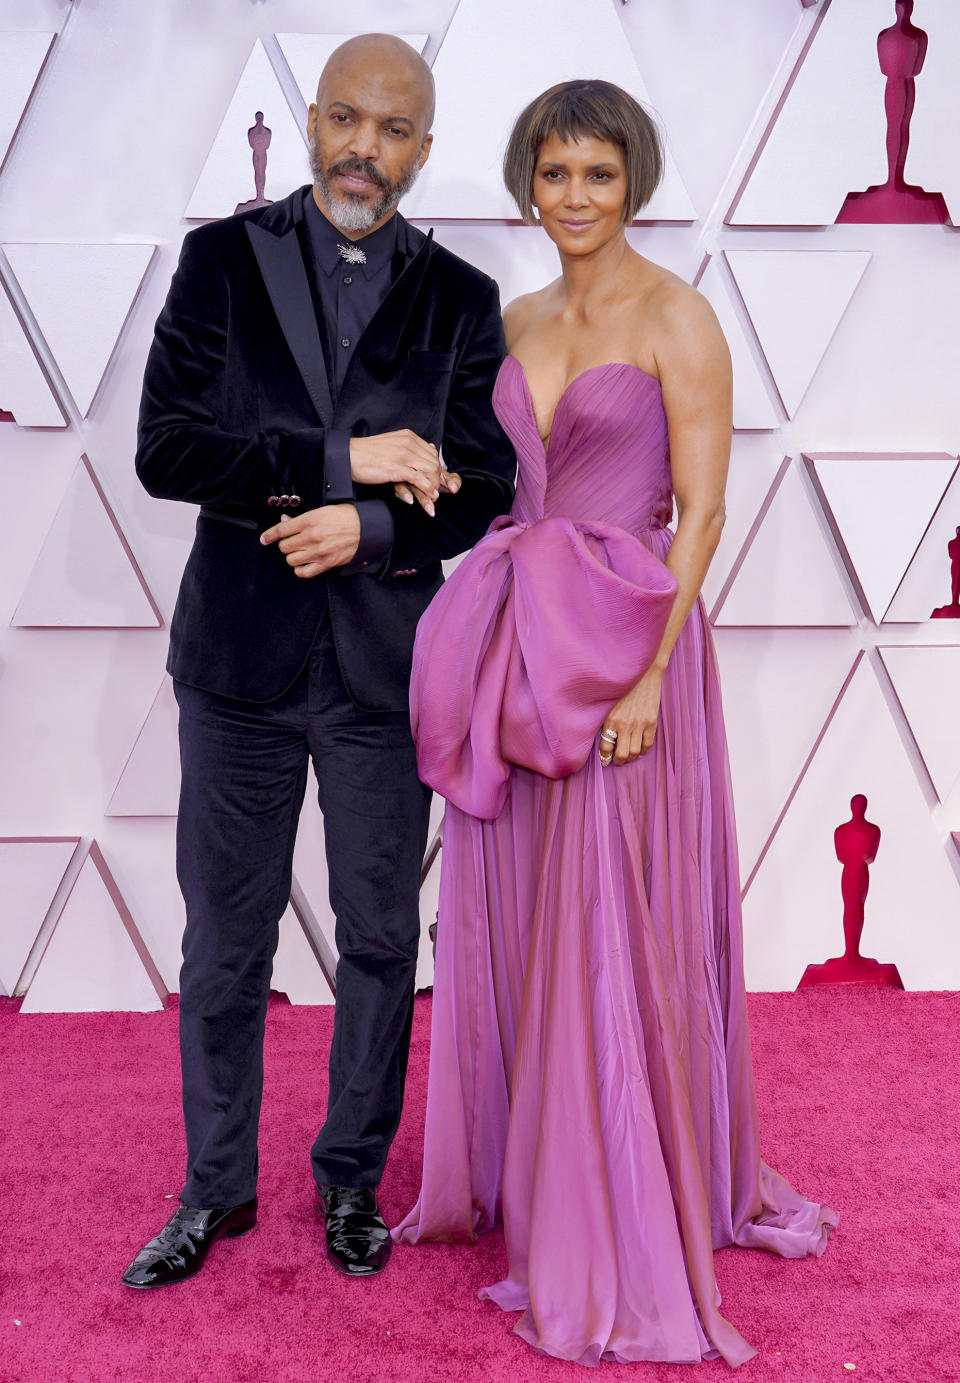 LOS ANGELES, CALIFORNIA – APRIL 25: (L-R) Van Hunt and Halle Berry attend the 93rd Annual Academy Awards at Union Station on April 25, 2021 in Los Angeles, California. (Photo by Chris Pizzello-Pool/Getty Images)